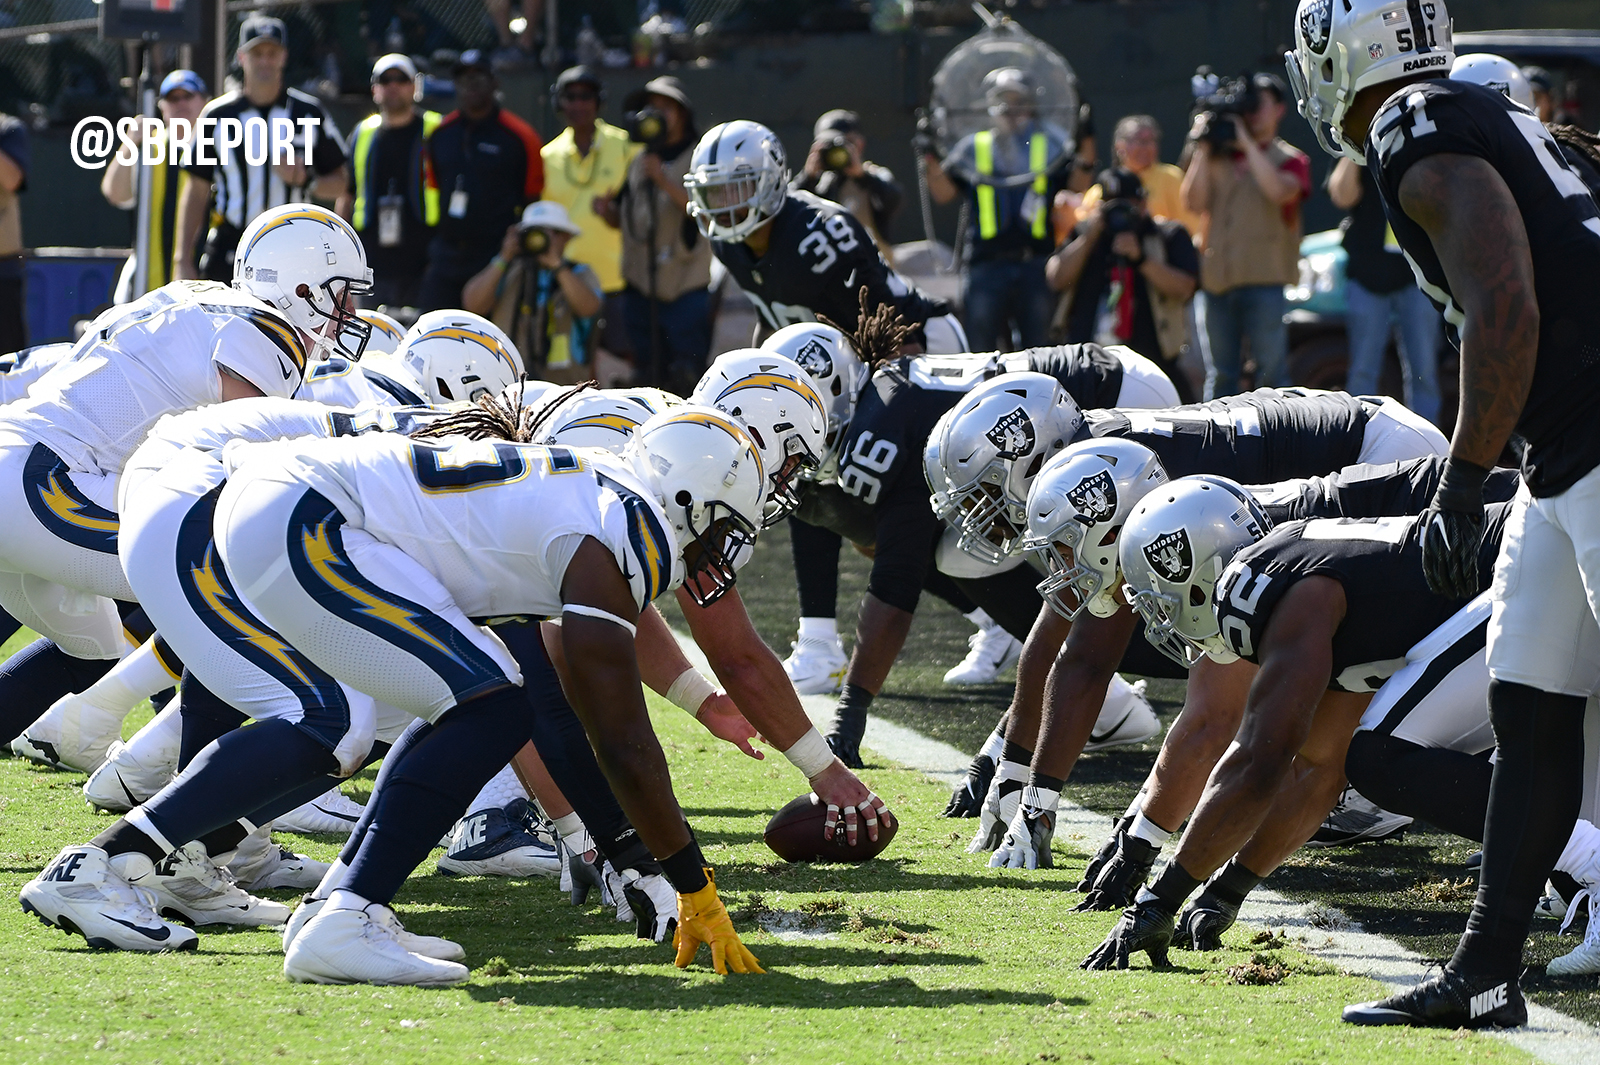 Raiders offense continues to struggle, team drops fourth-straight